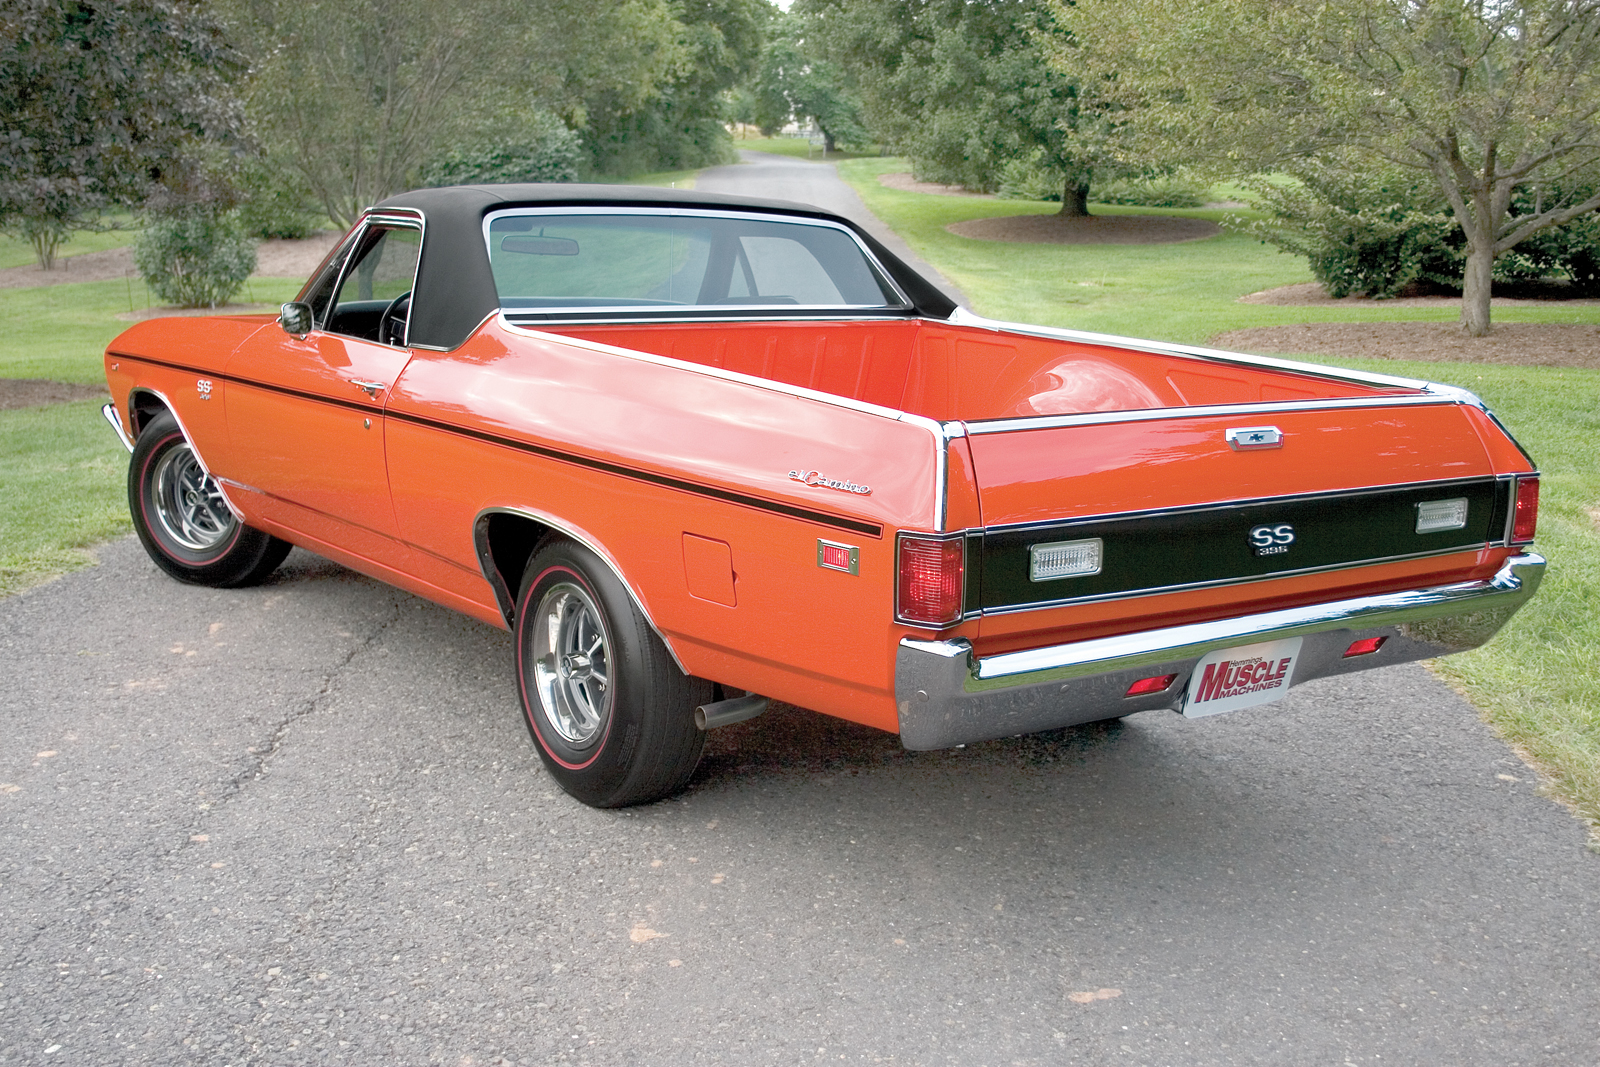 Pleasing Year Make And Model 1969 Chevrolet El Camino Ss 3 Hemmings Daily Wiring Cloud Hisonepsysticxongrecoveryedborg